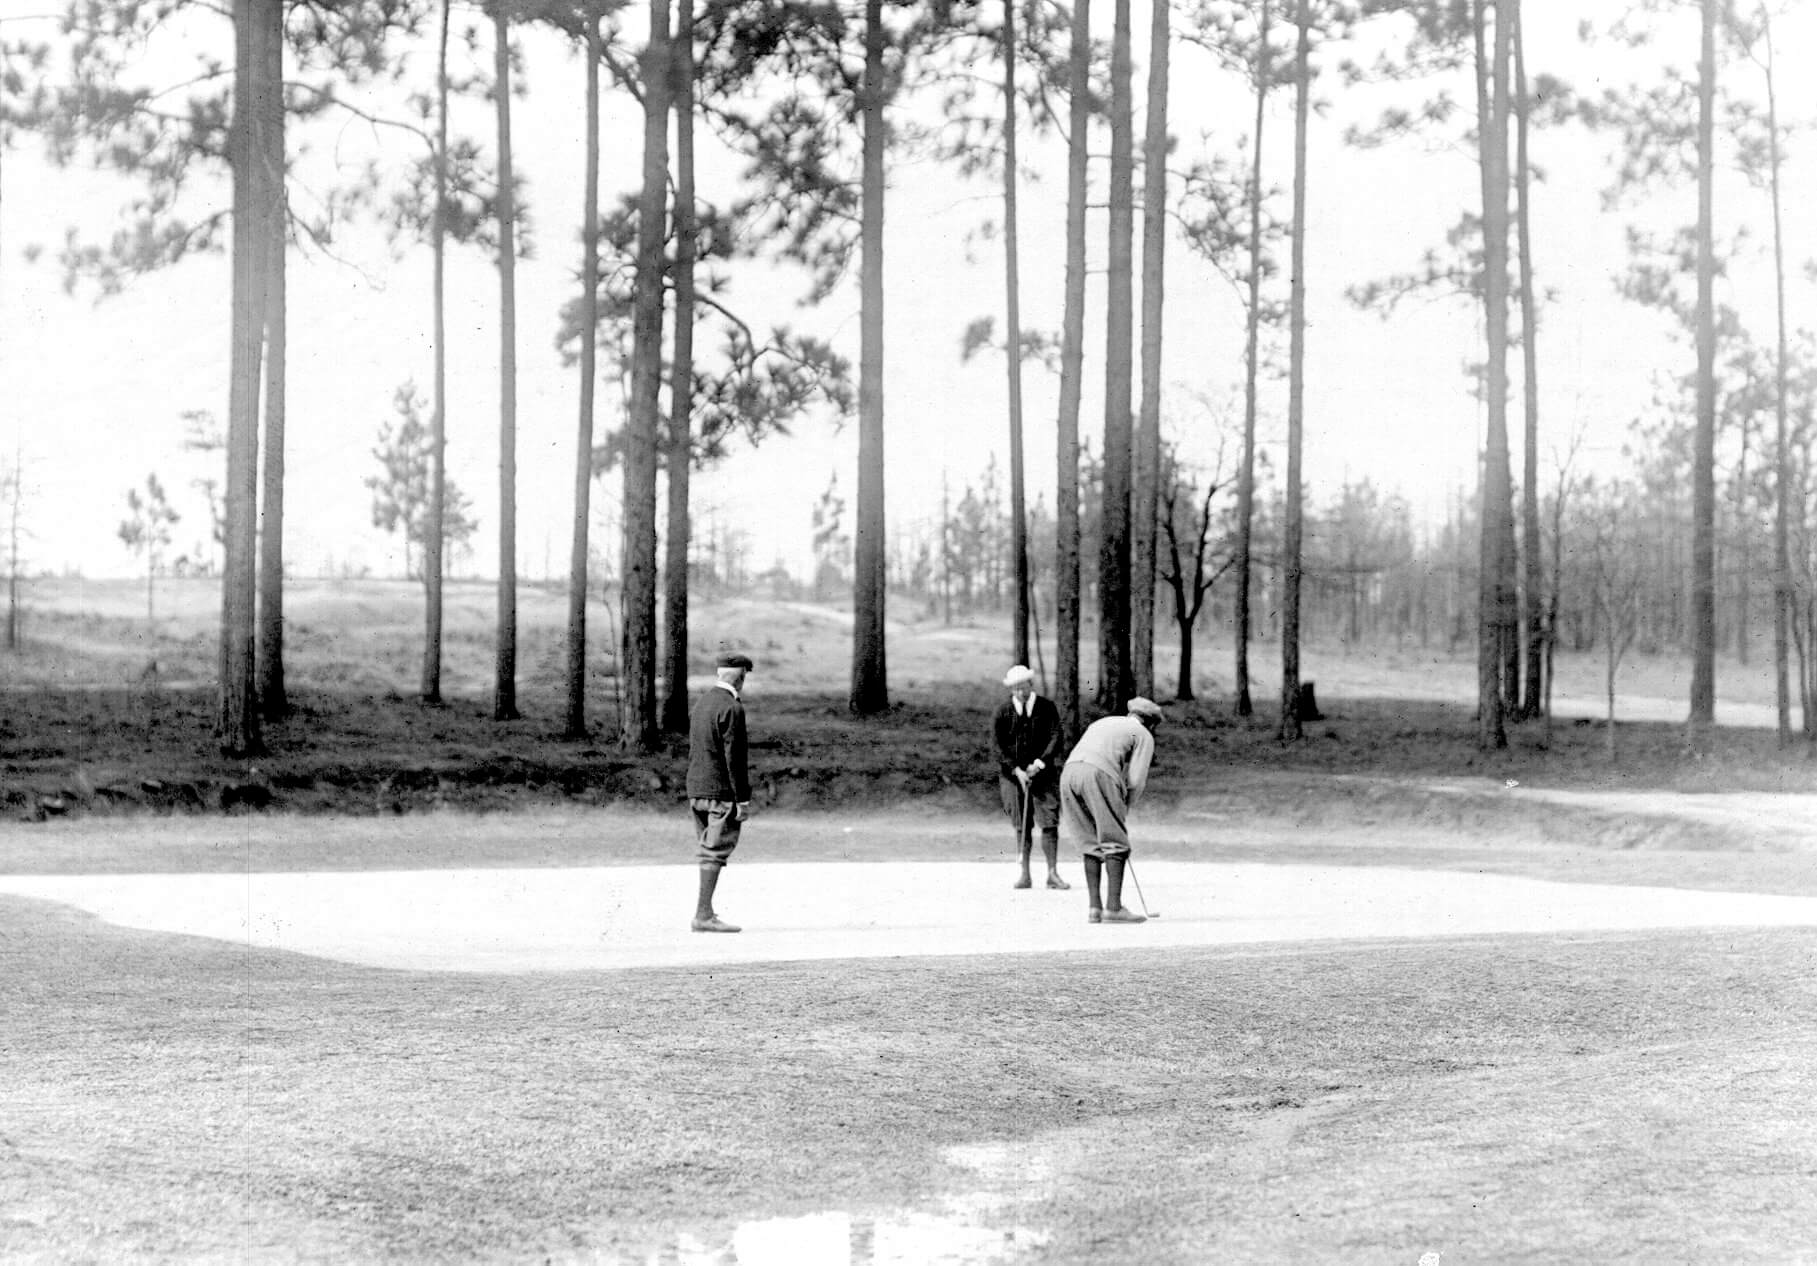 Before Donald Ross refined grass-growing techniques, Pinehurst's fabled greens were covered with a combination of sand and mud. Photo courtesy of the Tufts Archives